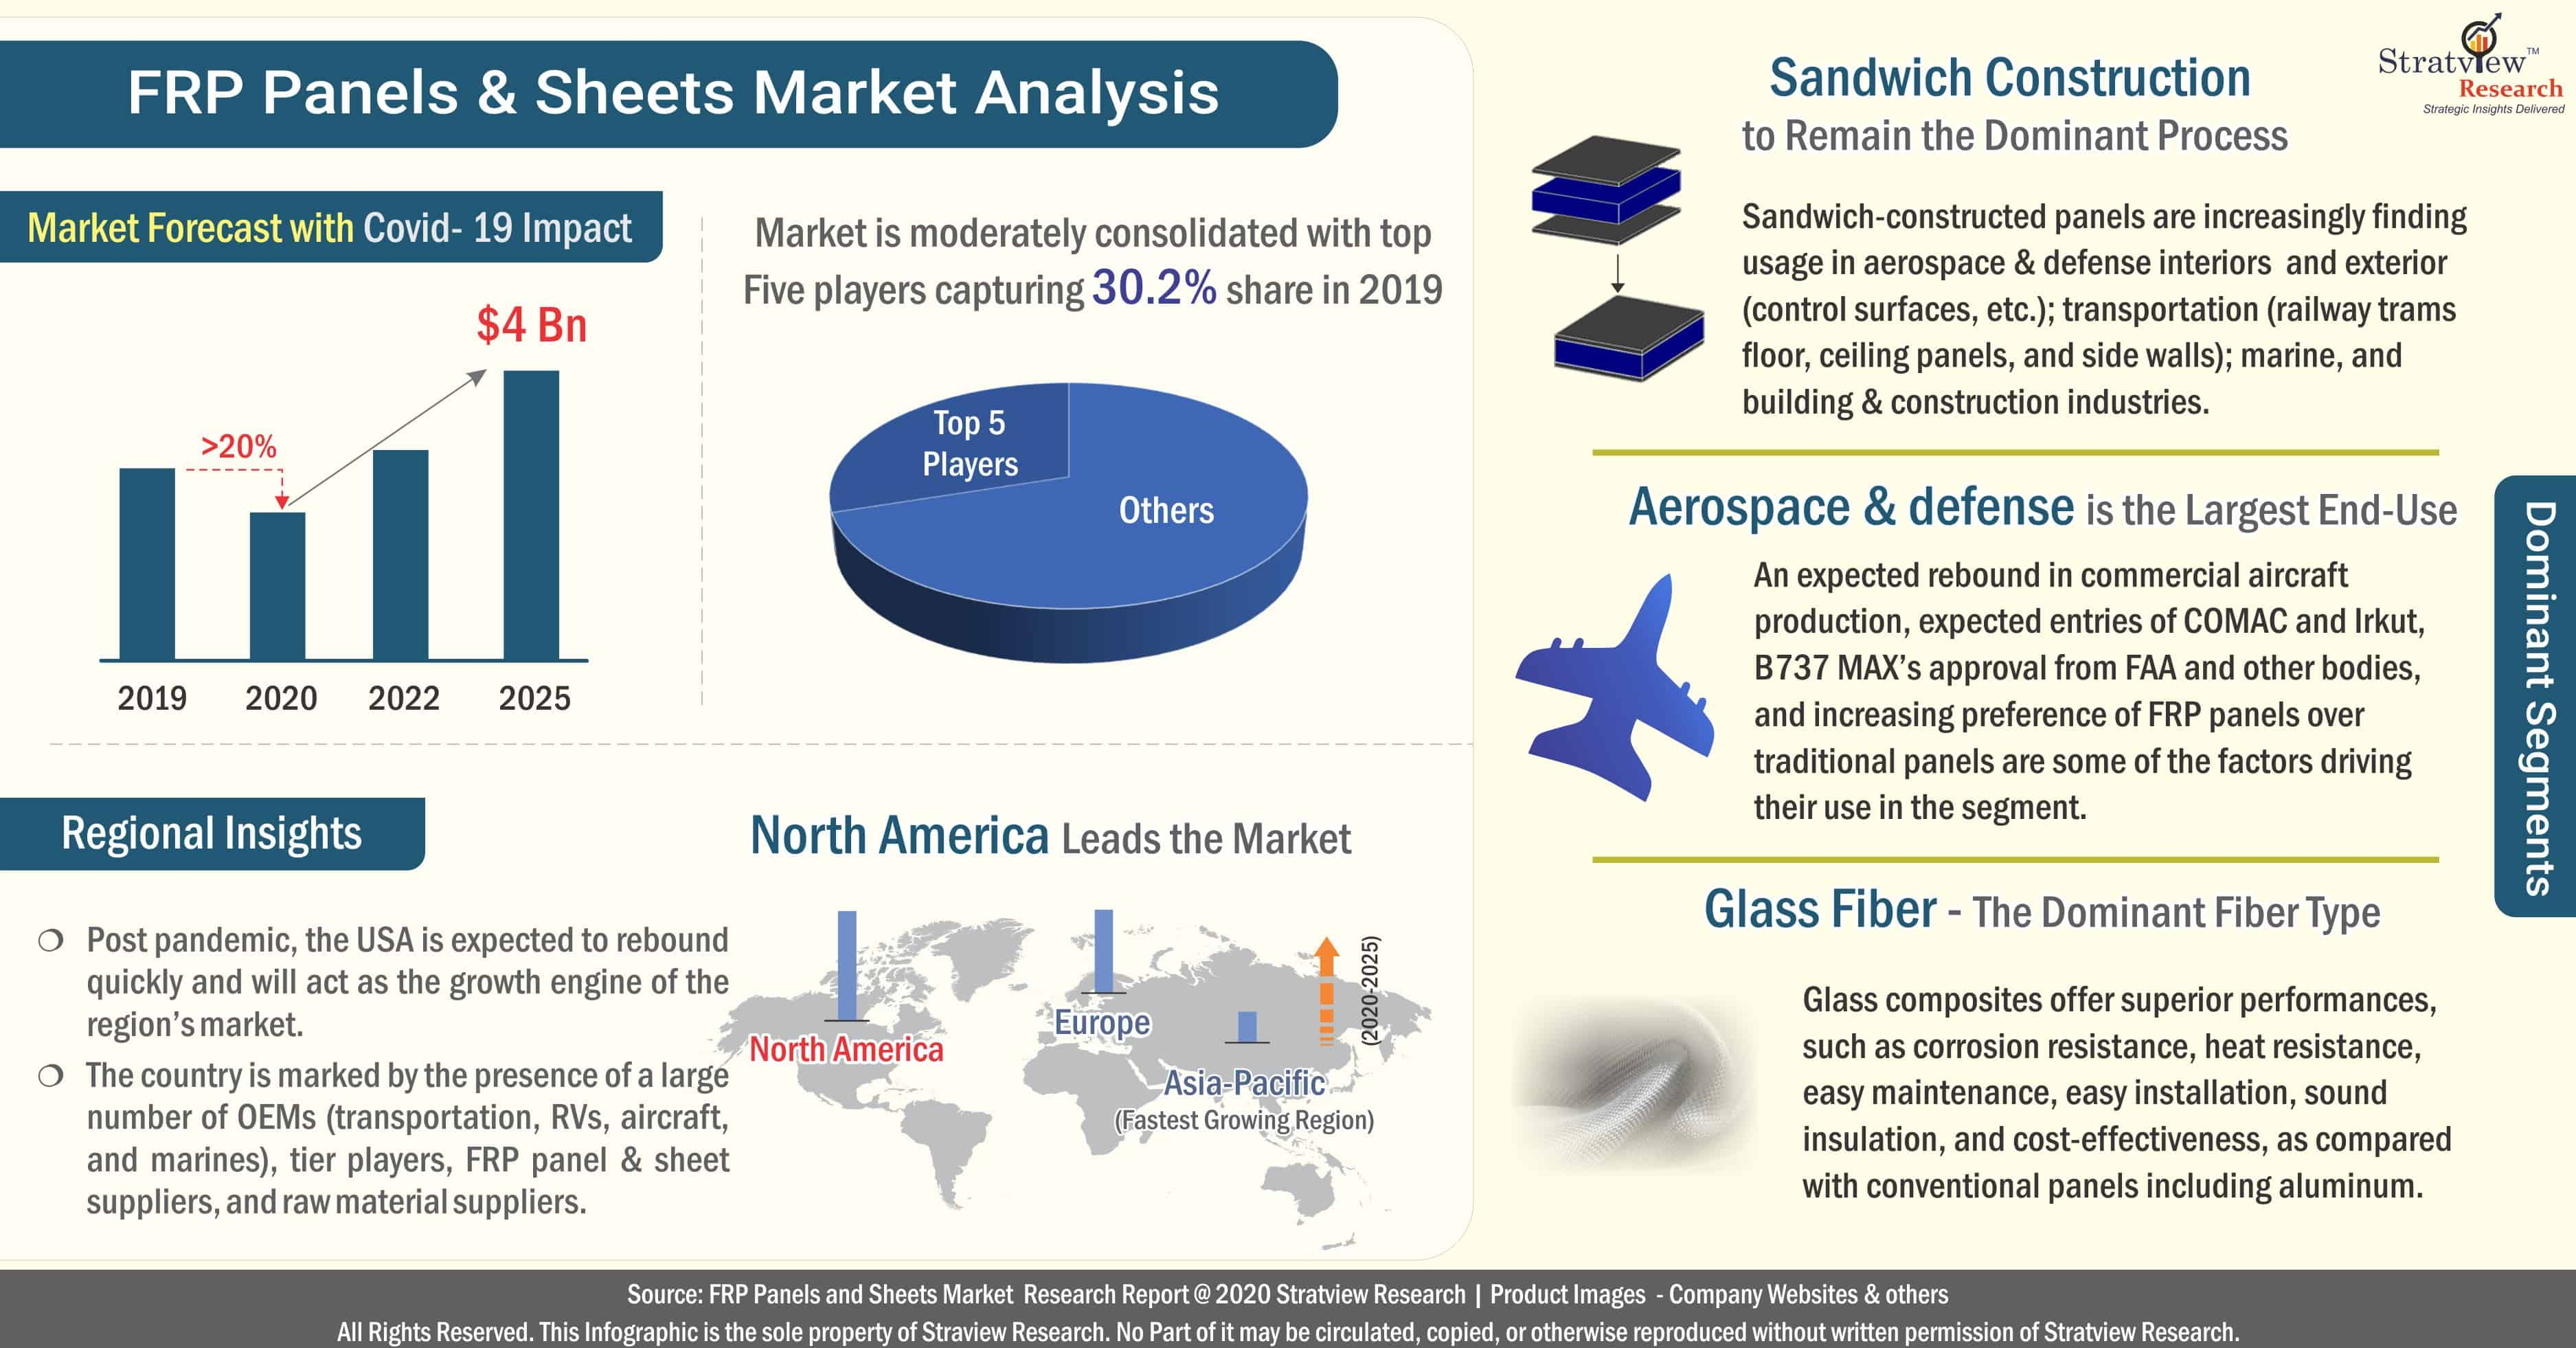 Fiber Reinforced Plastic (FRP) Panels & Sheets Market Analysis